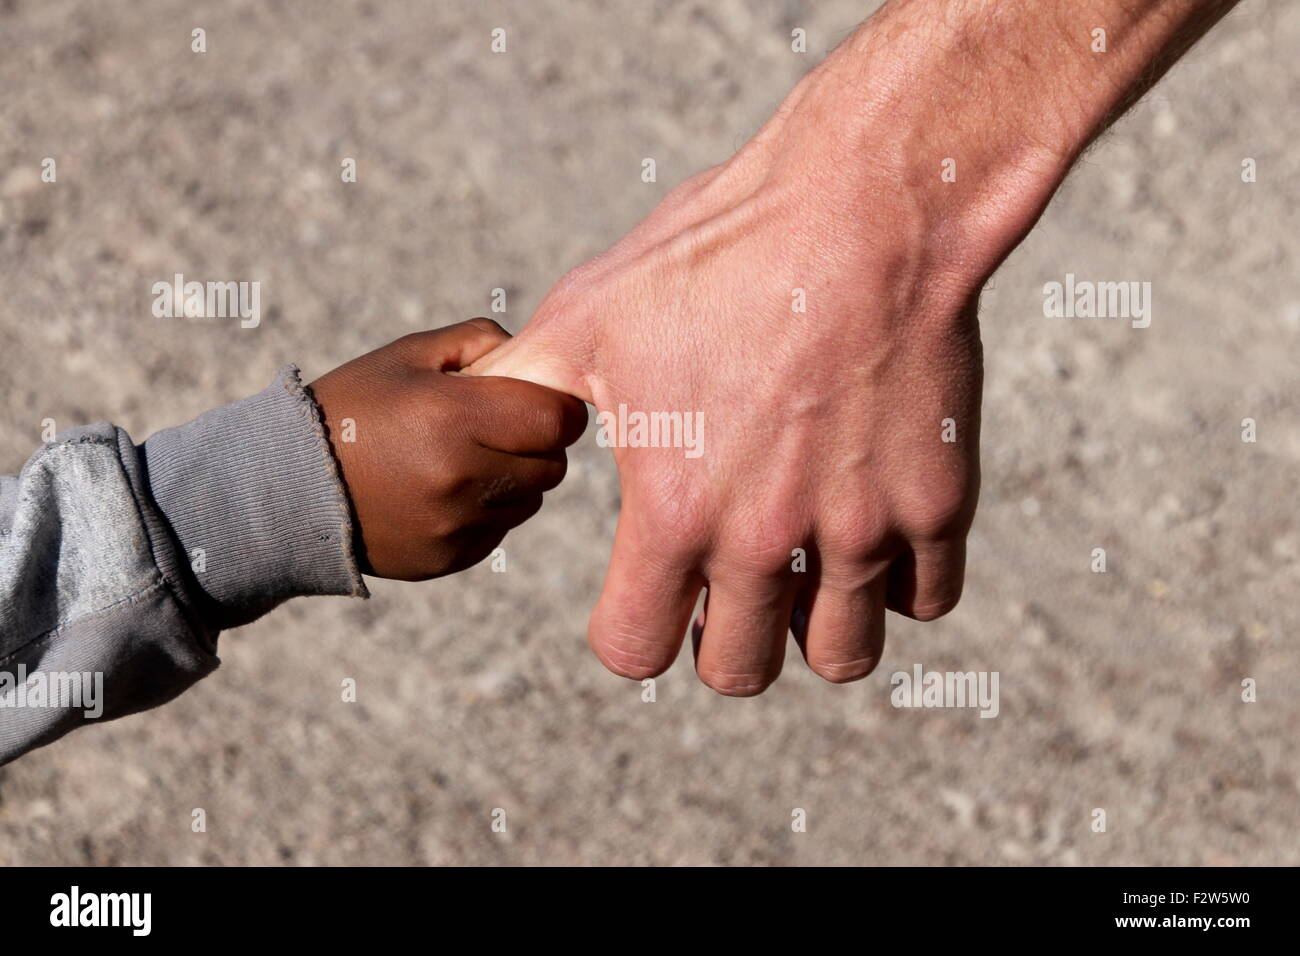 A Refugee child on Hand of a Helper - Stock Image